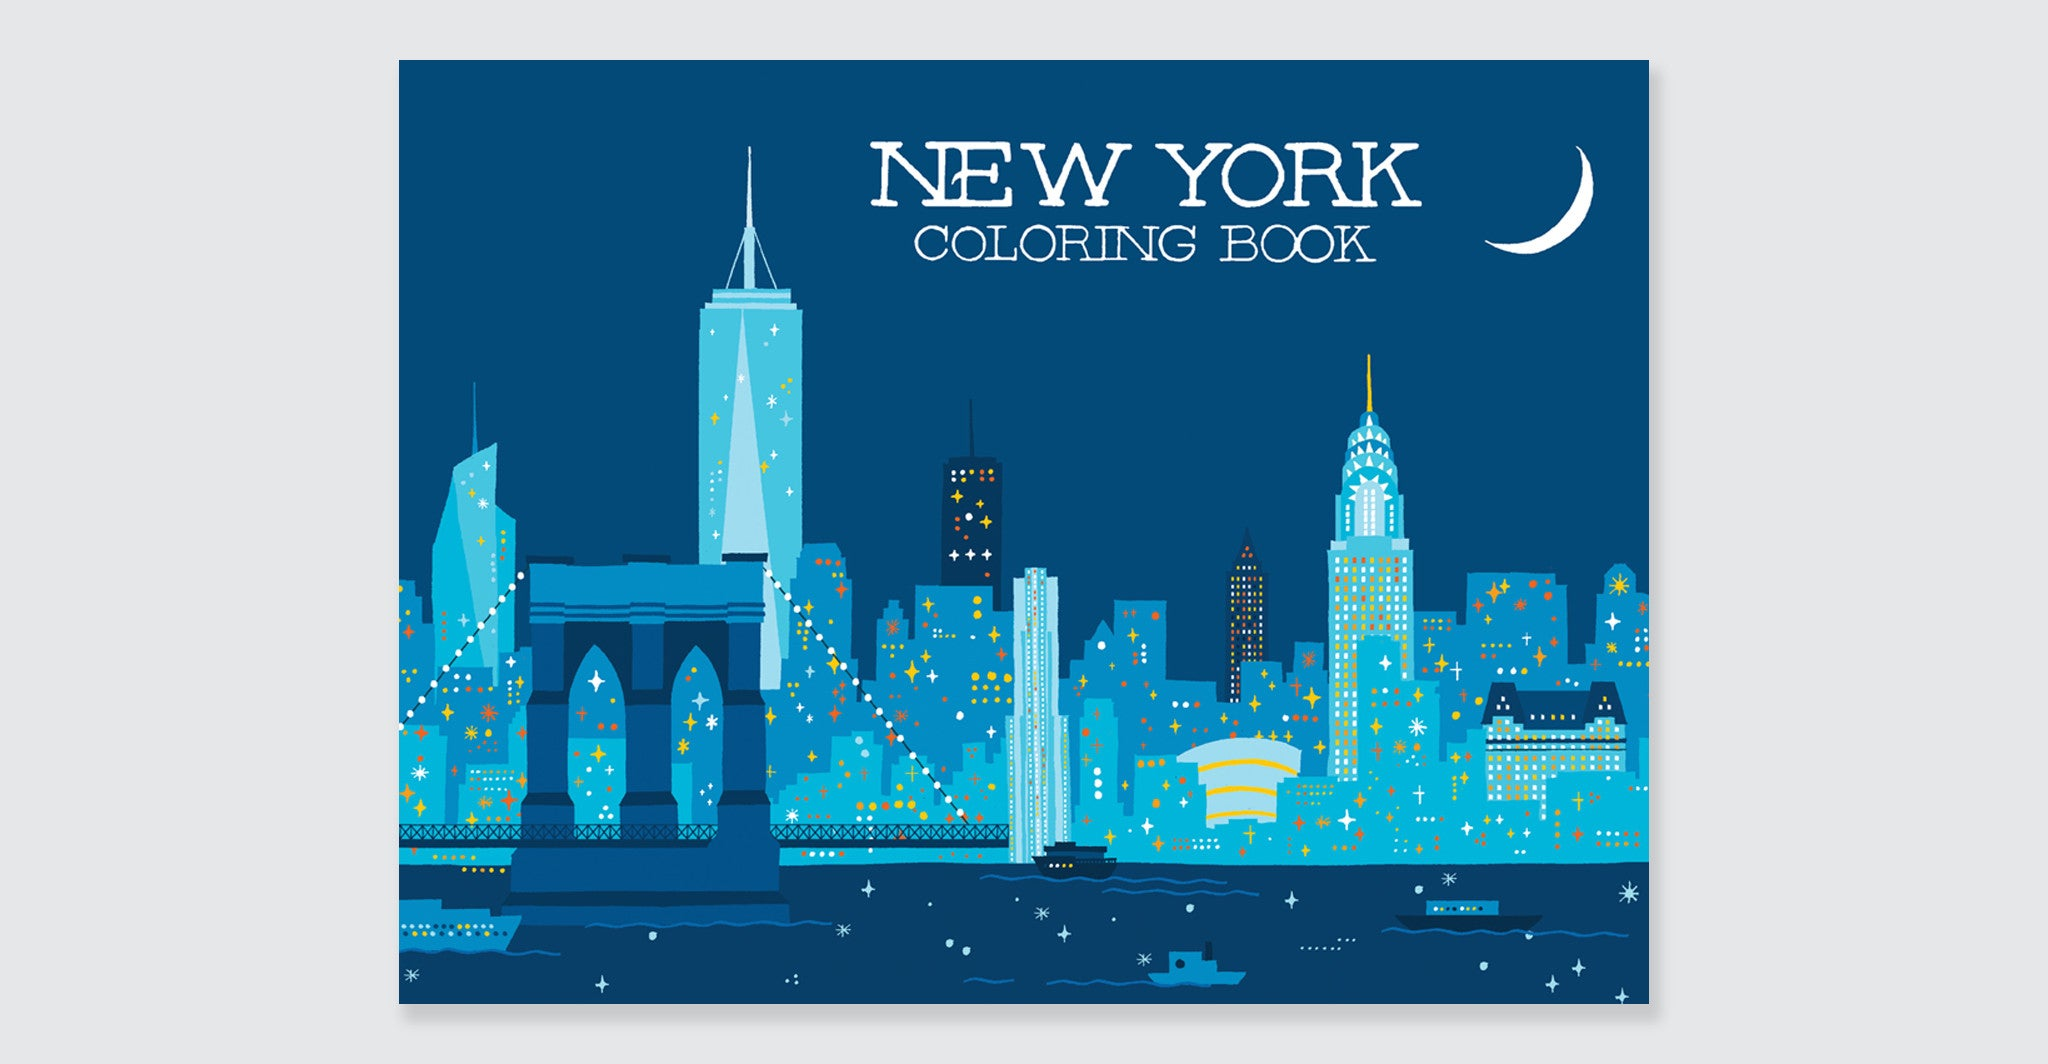 NEW YORK COLORING BOOK Illustrated By Min Heo